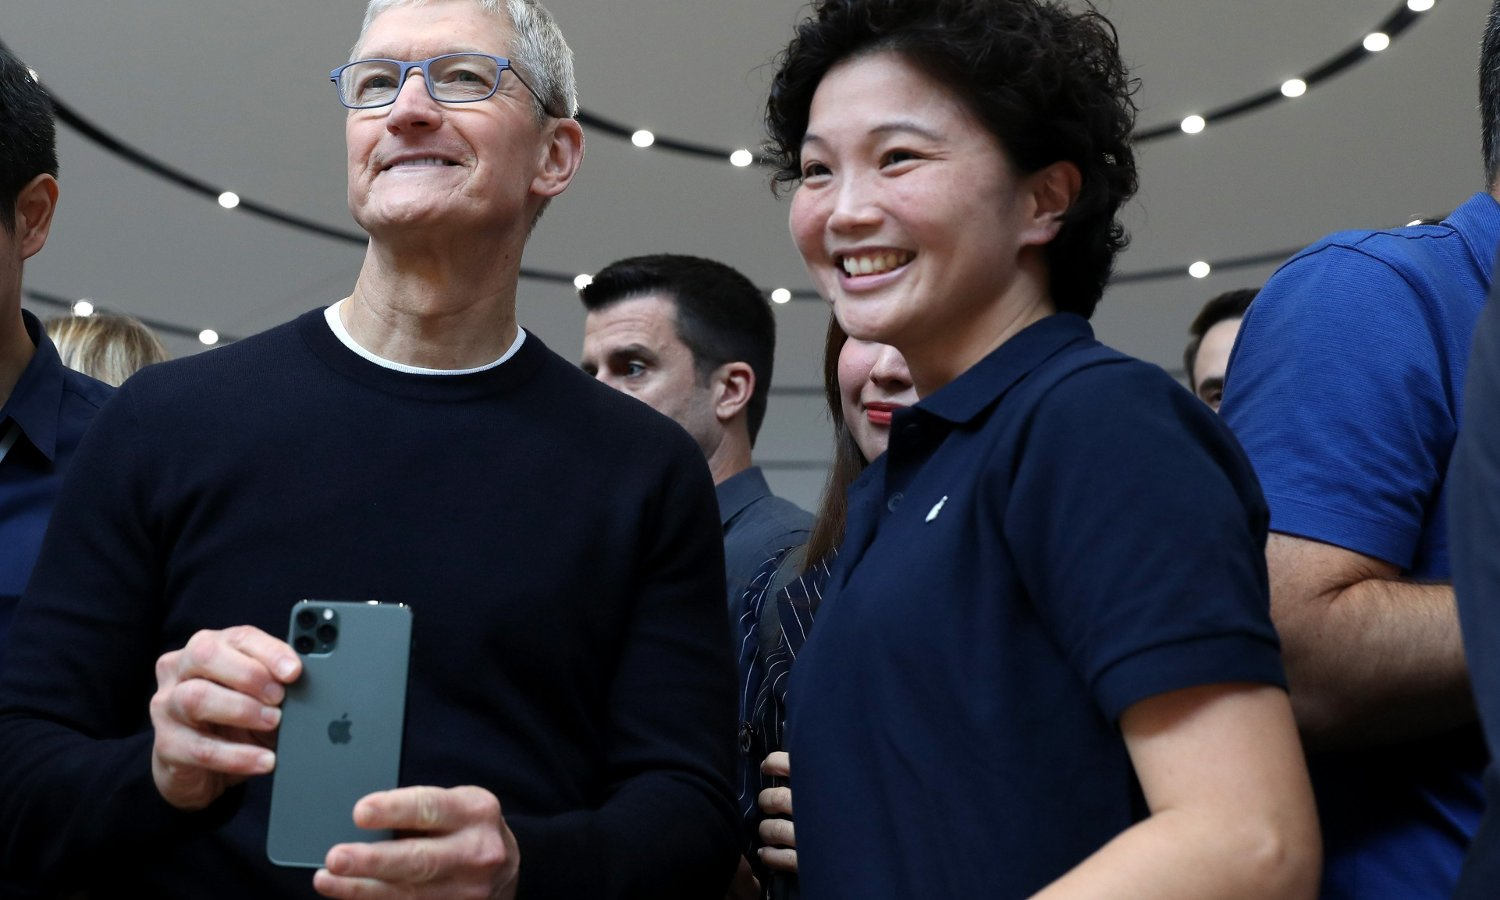 CUPERTINO, CALIFORNIA - SEPTEMBER 10: Apple CEO Tim Cook holds the new Apple iPhone 11 Pro during an Apple special event on September 10, 2019 in Cupertino, California. Apple unveiled several new products including an iPhone 11, iPhone 11 Pro, Apple Watch Series 5 and an updated iPad. Justin Sullivan/Getty Images/AFP == FOR NEWSPAPERS, INTERNET, TELCOS & TELEVISION USE ONLY ==